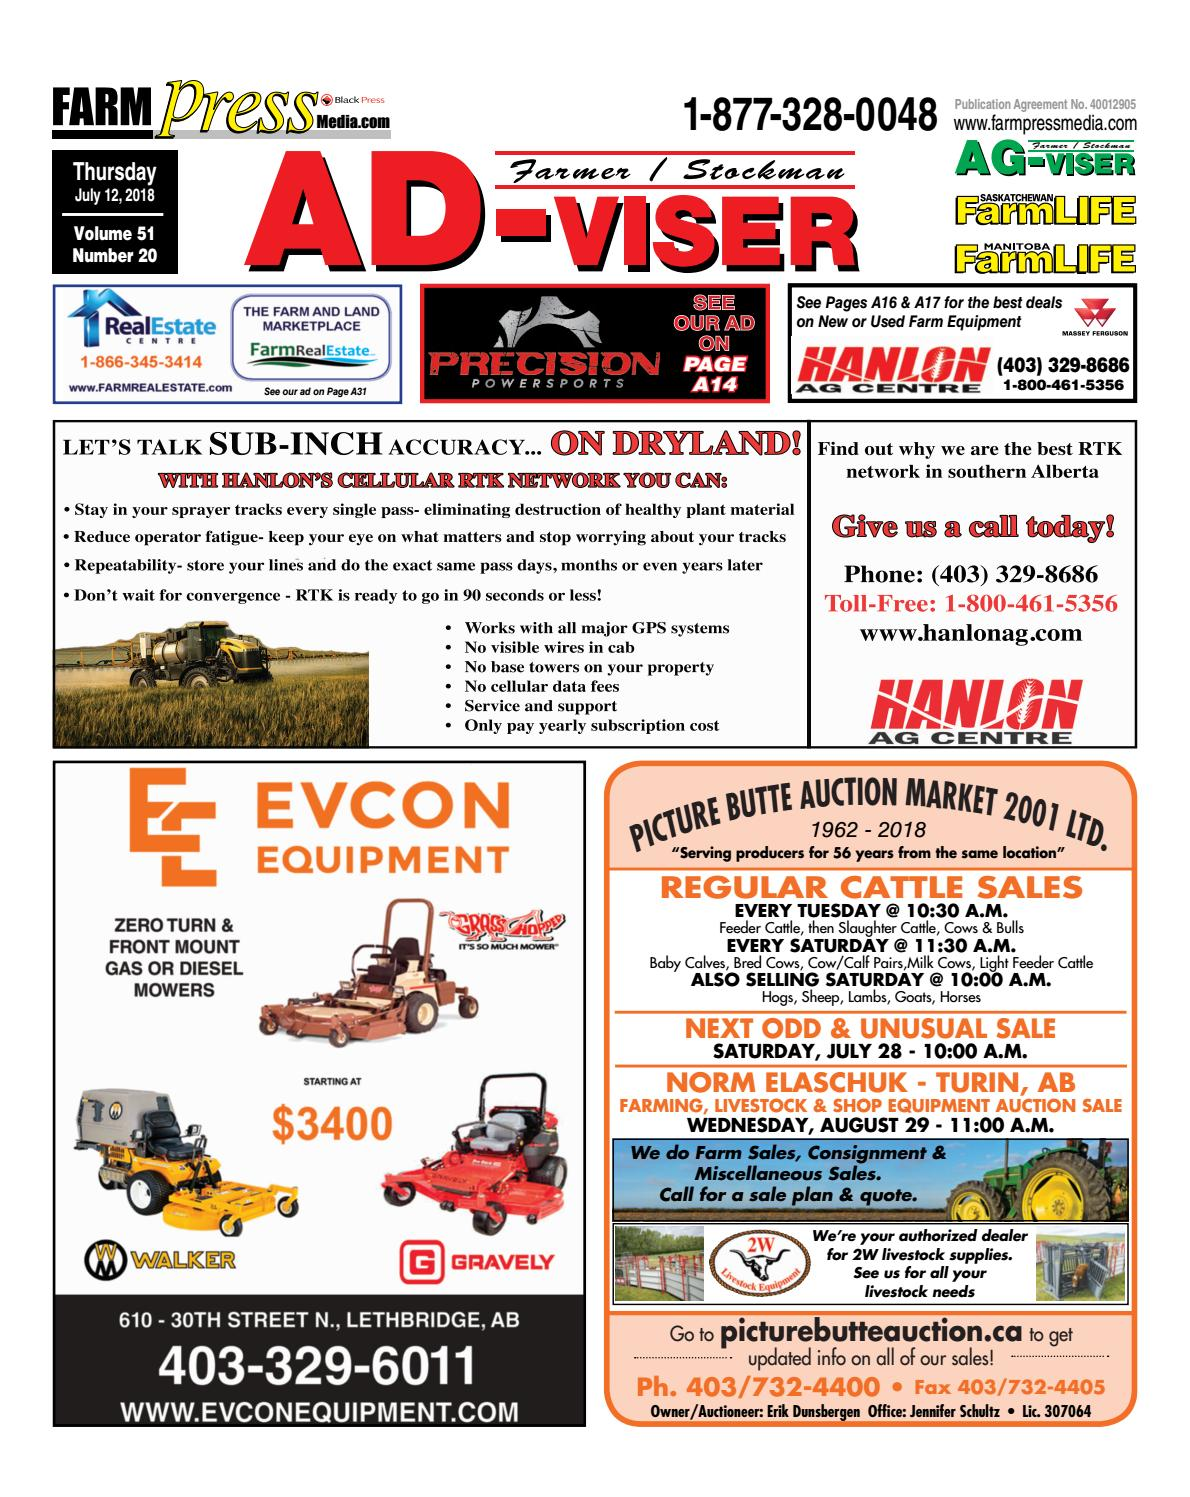 Southern Alberta Advisor, July 12, 2018 by Black Press Media Group